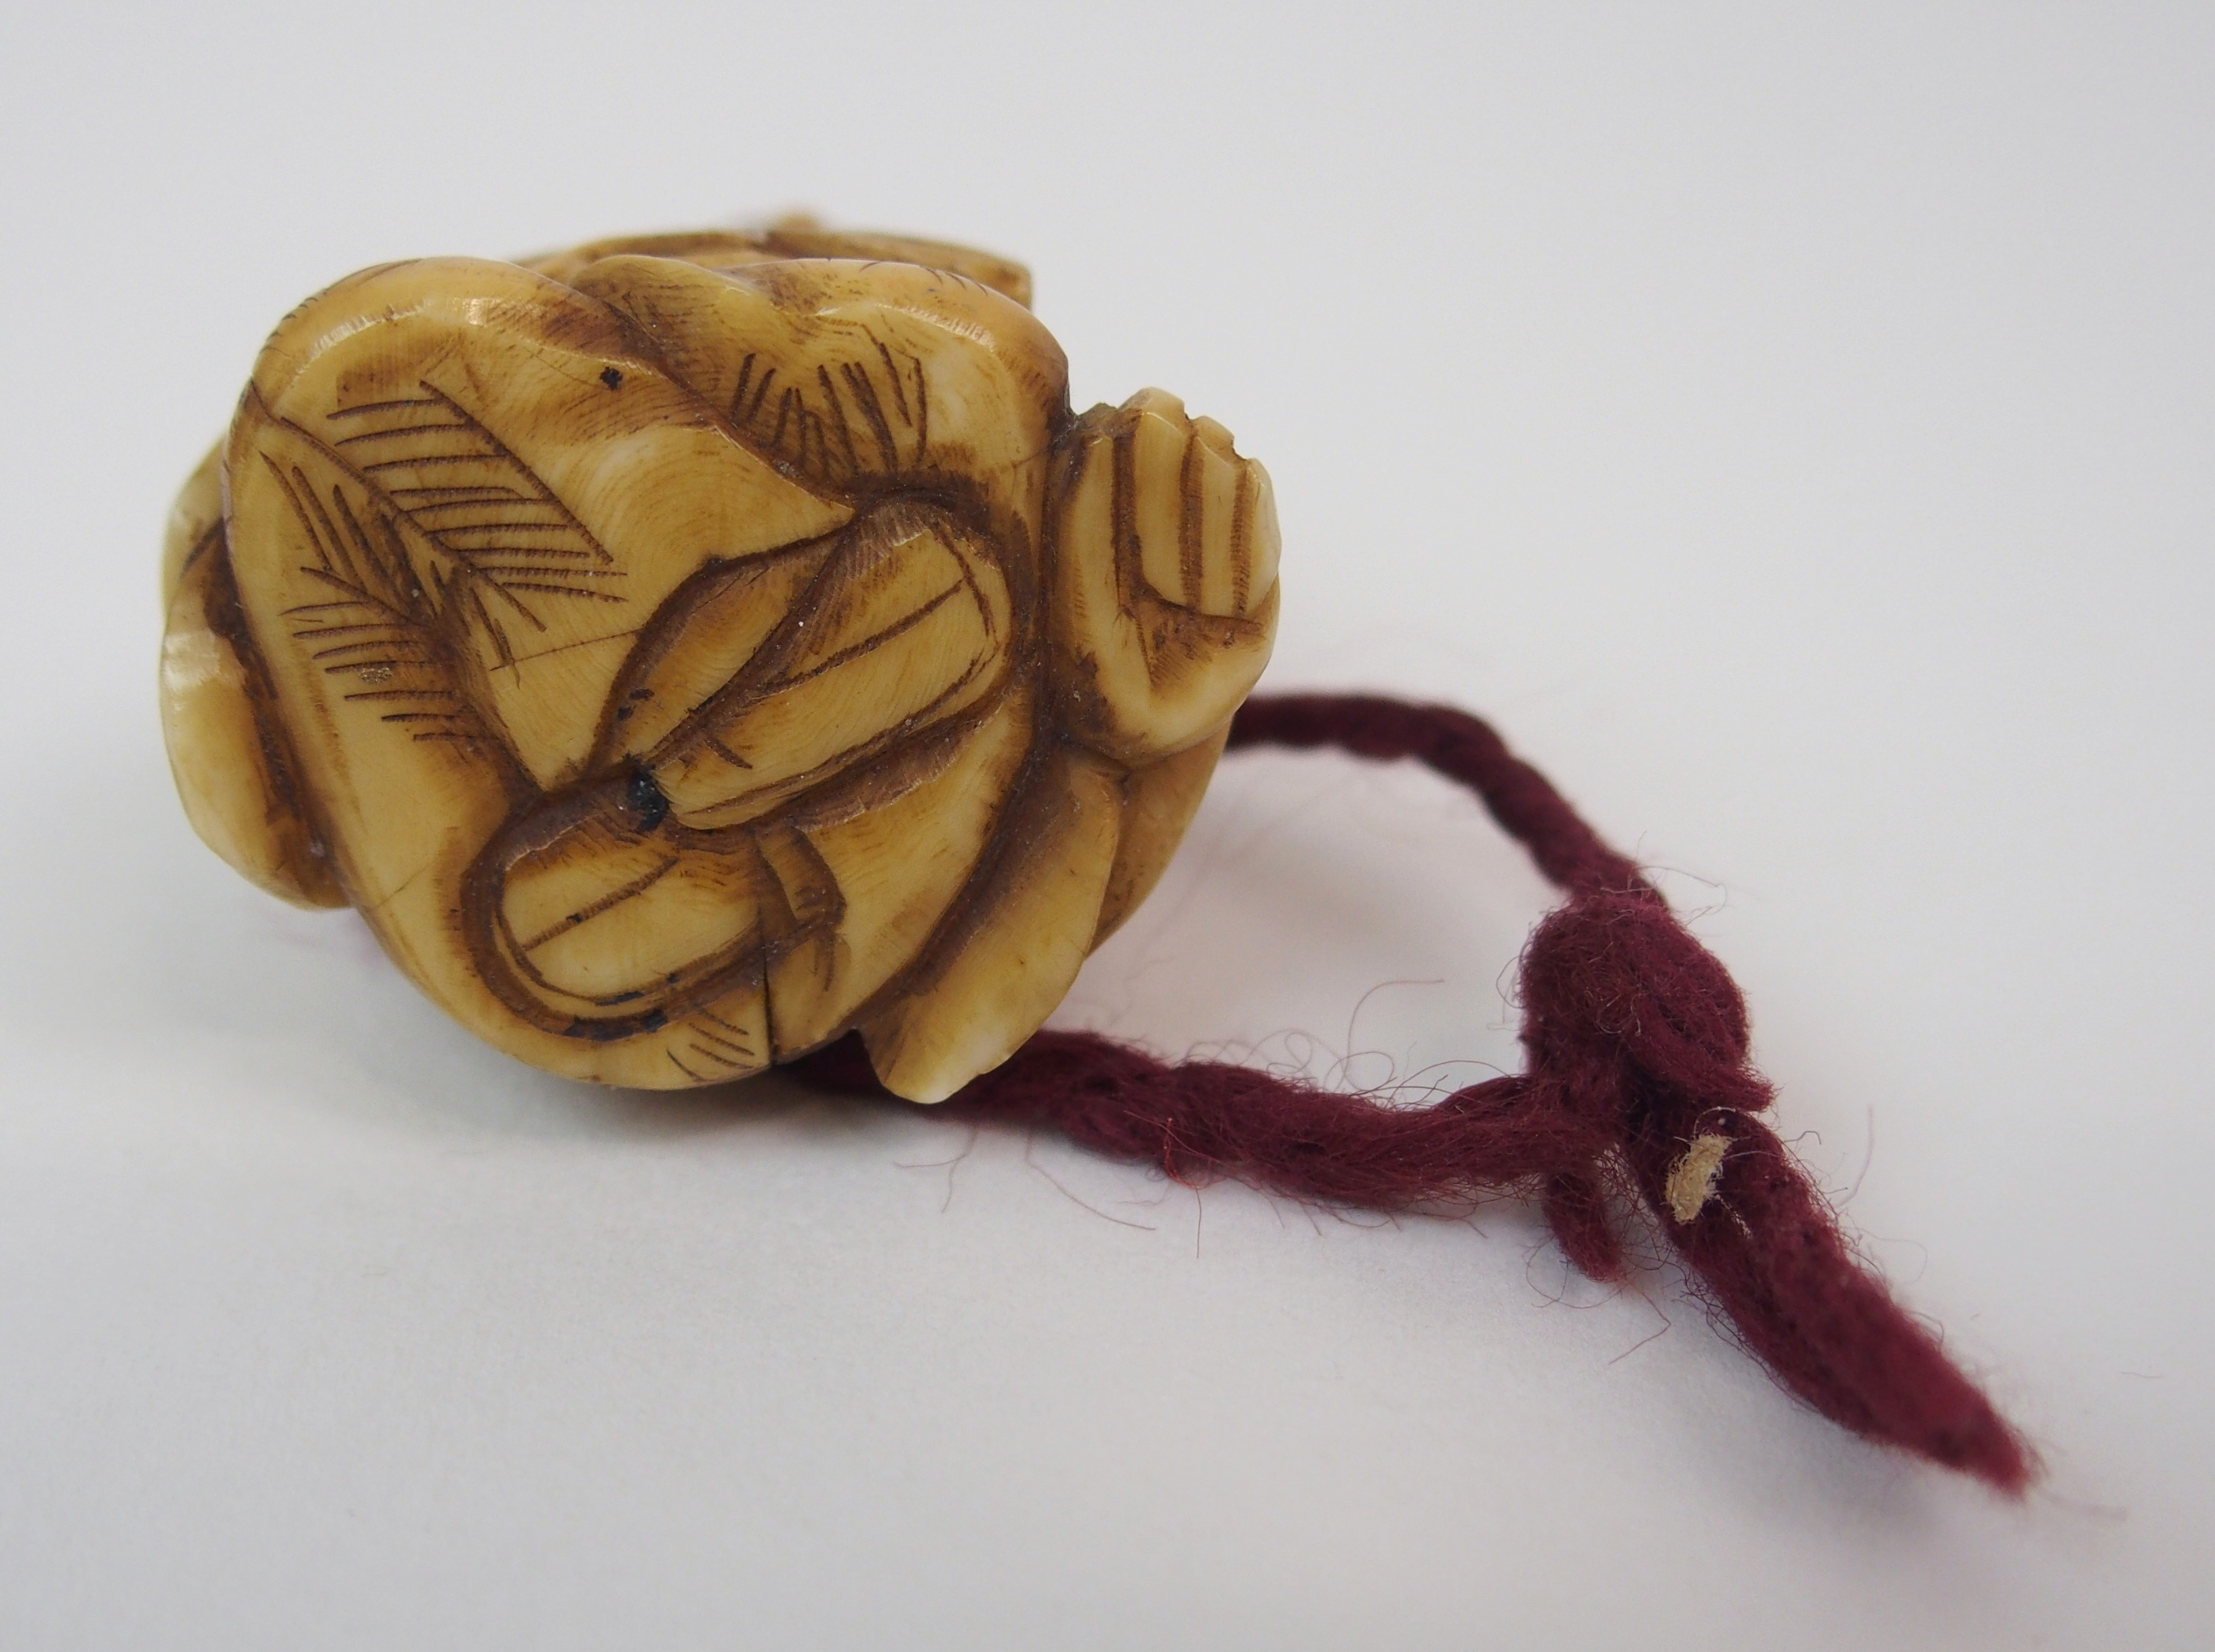 Lot 32 - AN AFRICAN HARDWOOD KNOBKERRIE rootwood club with geometric carved grip, 41cm long, an ivory netsuke